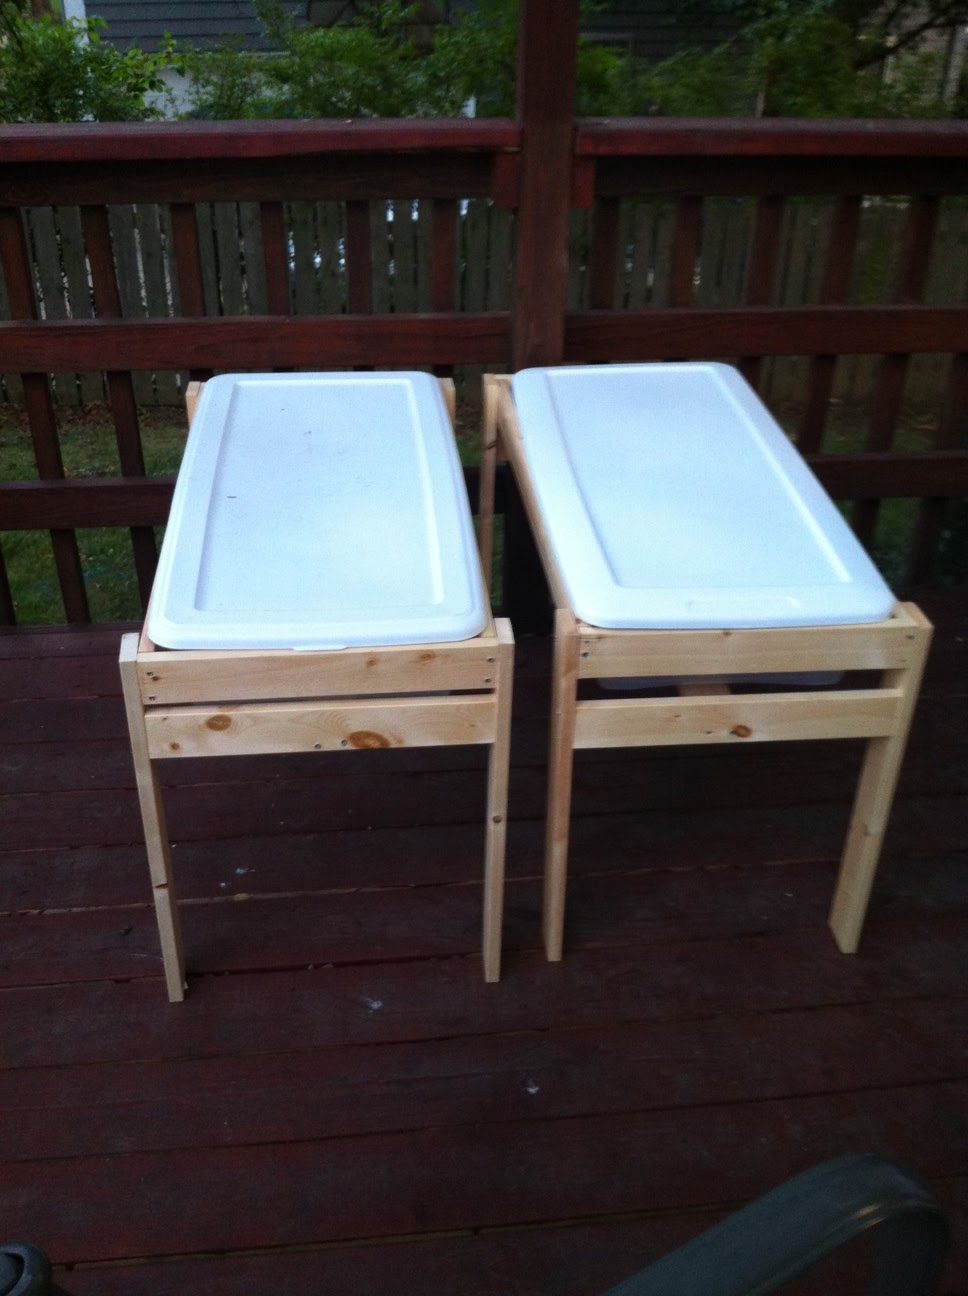 Make at home momma diy water sand tables for Diy sand and water table pvc